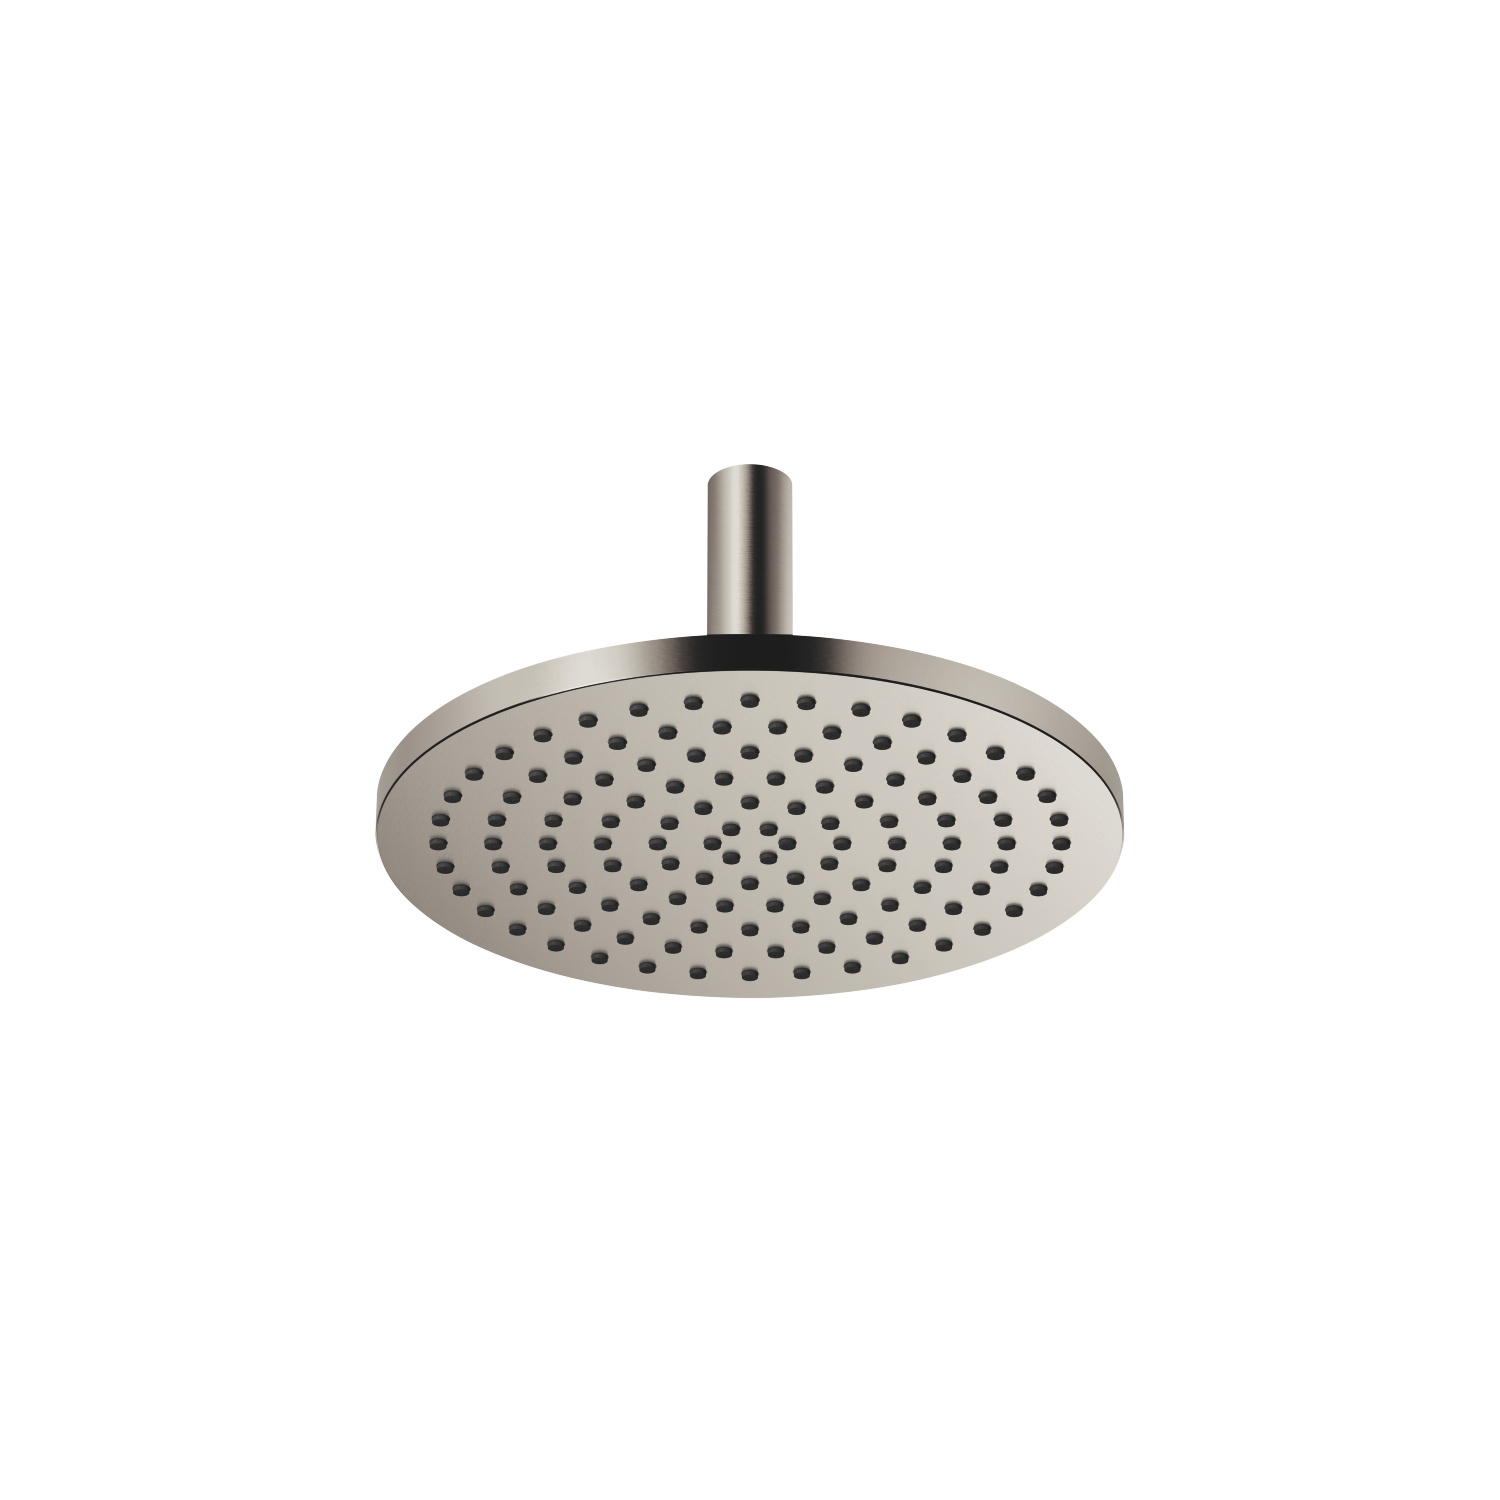 Rain shower with ceiling fixing - platinum matt - 28 689 970-06